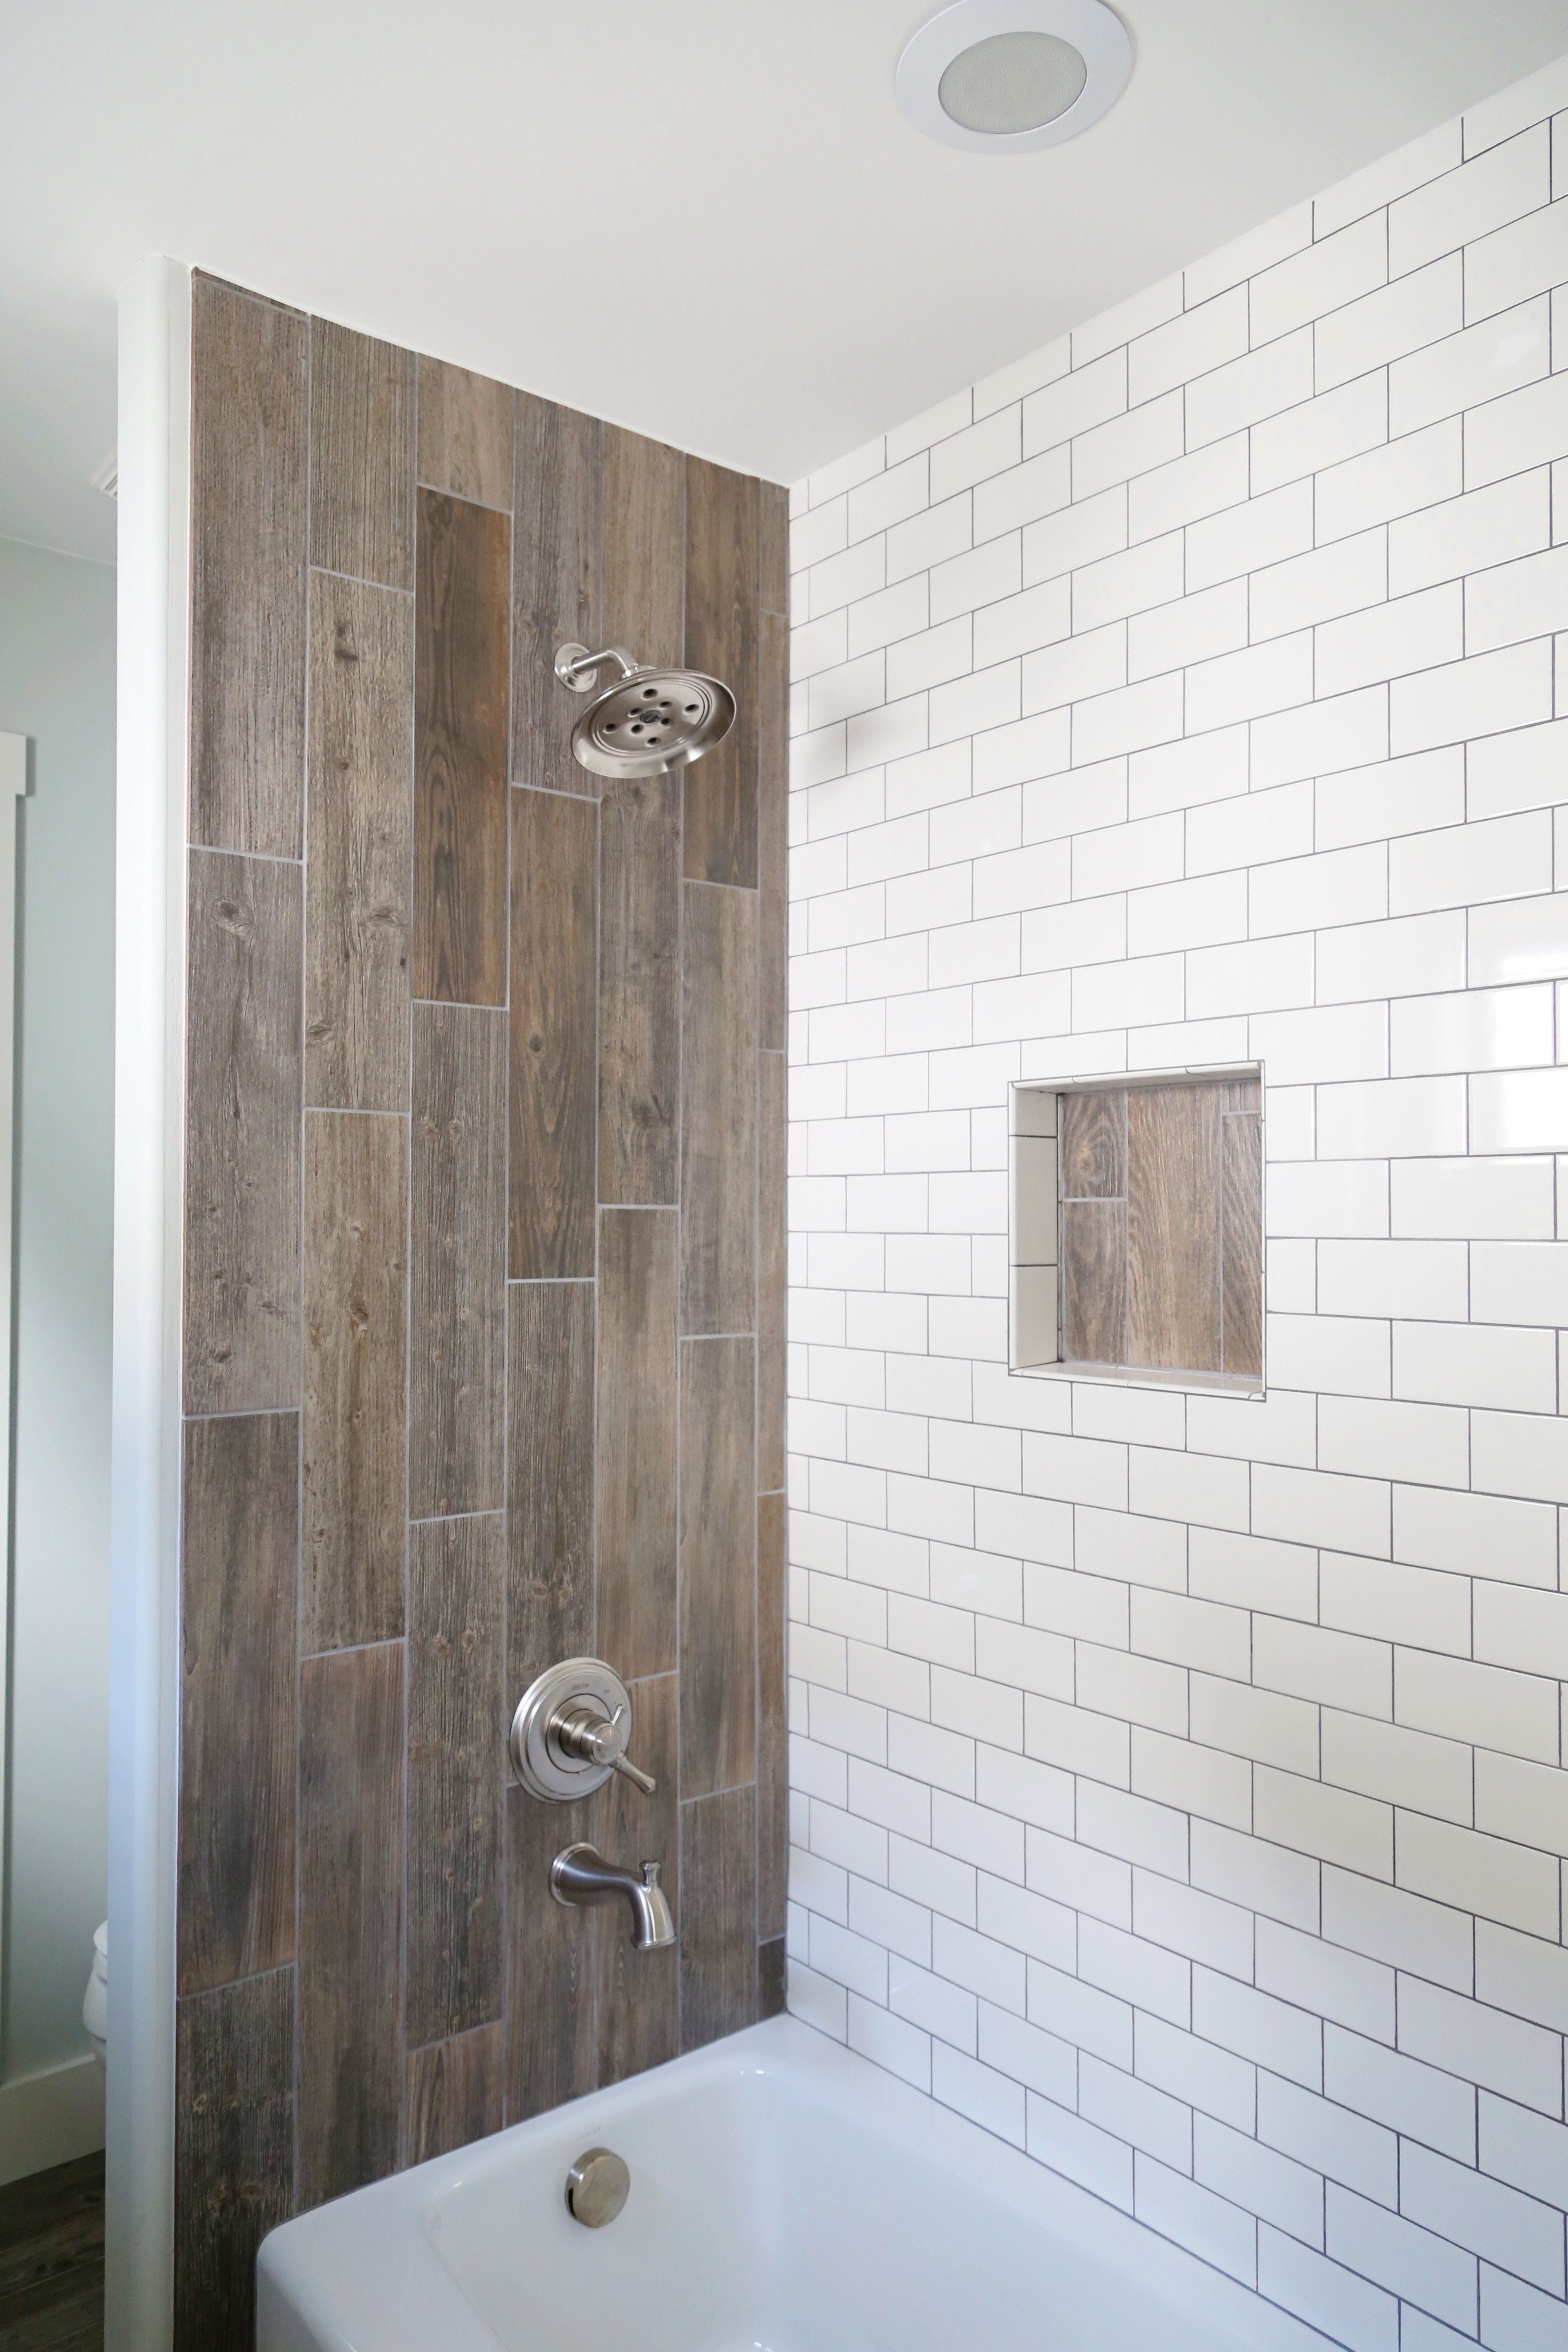 Farmhouse Bathroom Renovation | Wood grain, Met and Woods